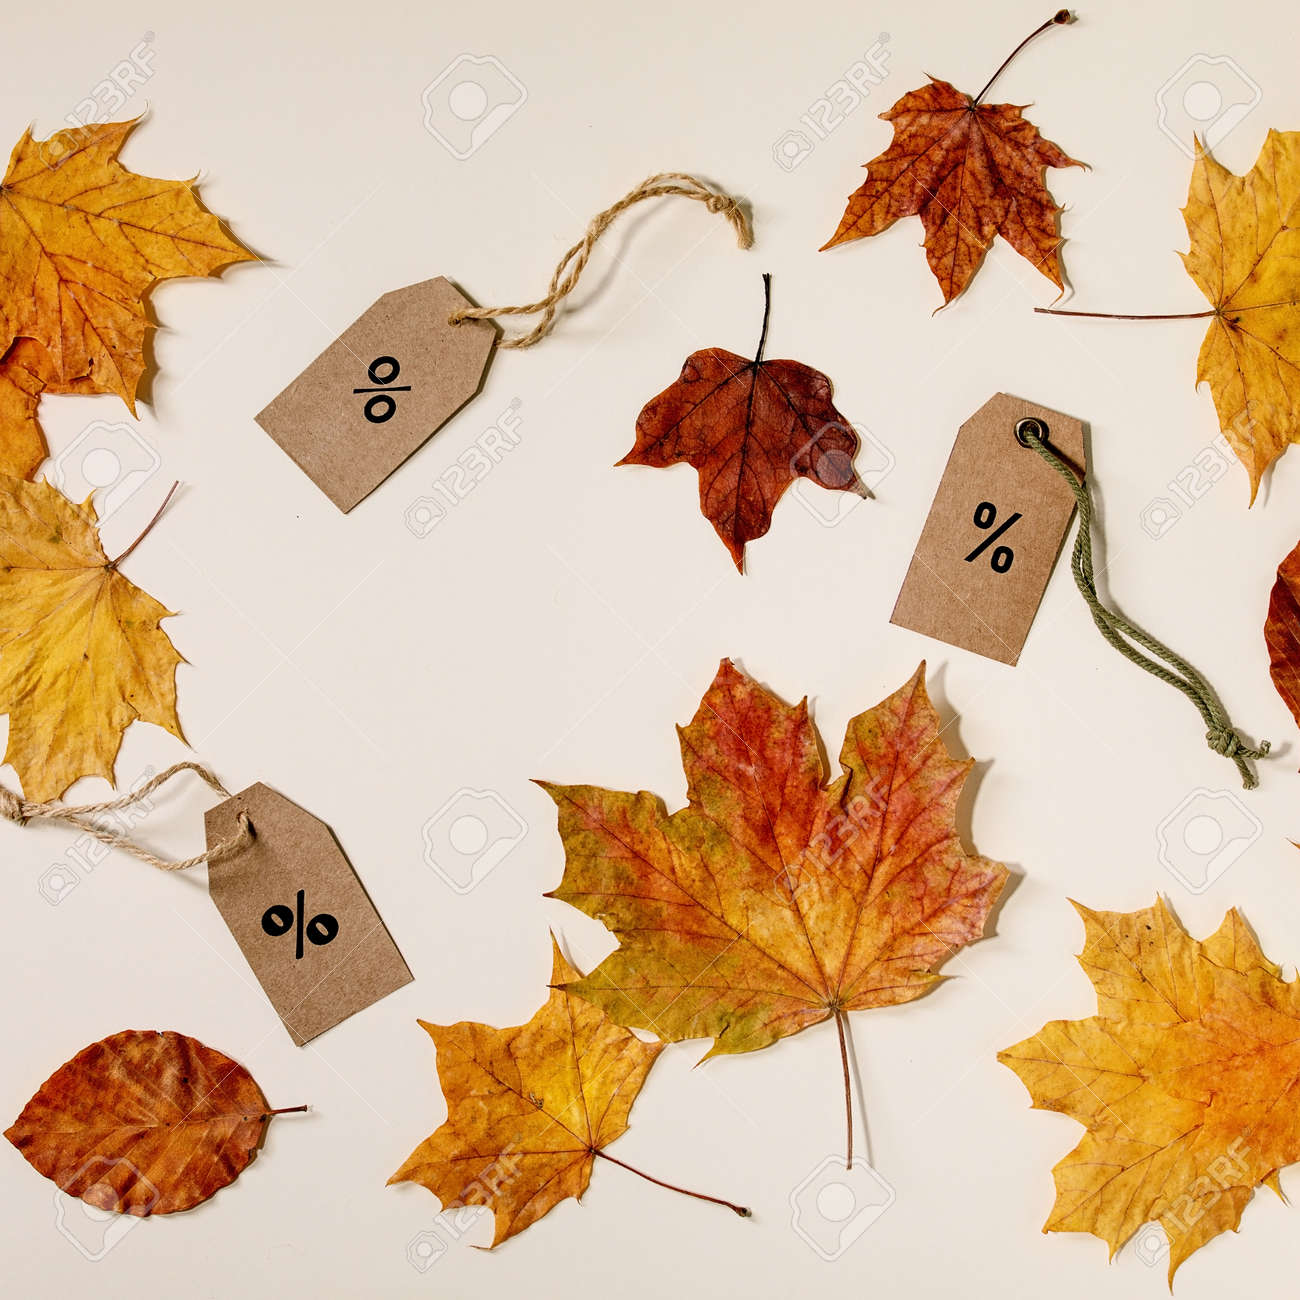 Autumn sale concept. Cardboard labels with percents, variety of yellow autumn leaves over beige background. Flat lay. Square - 173052975